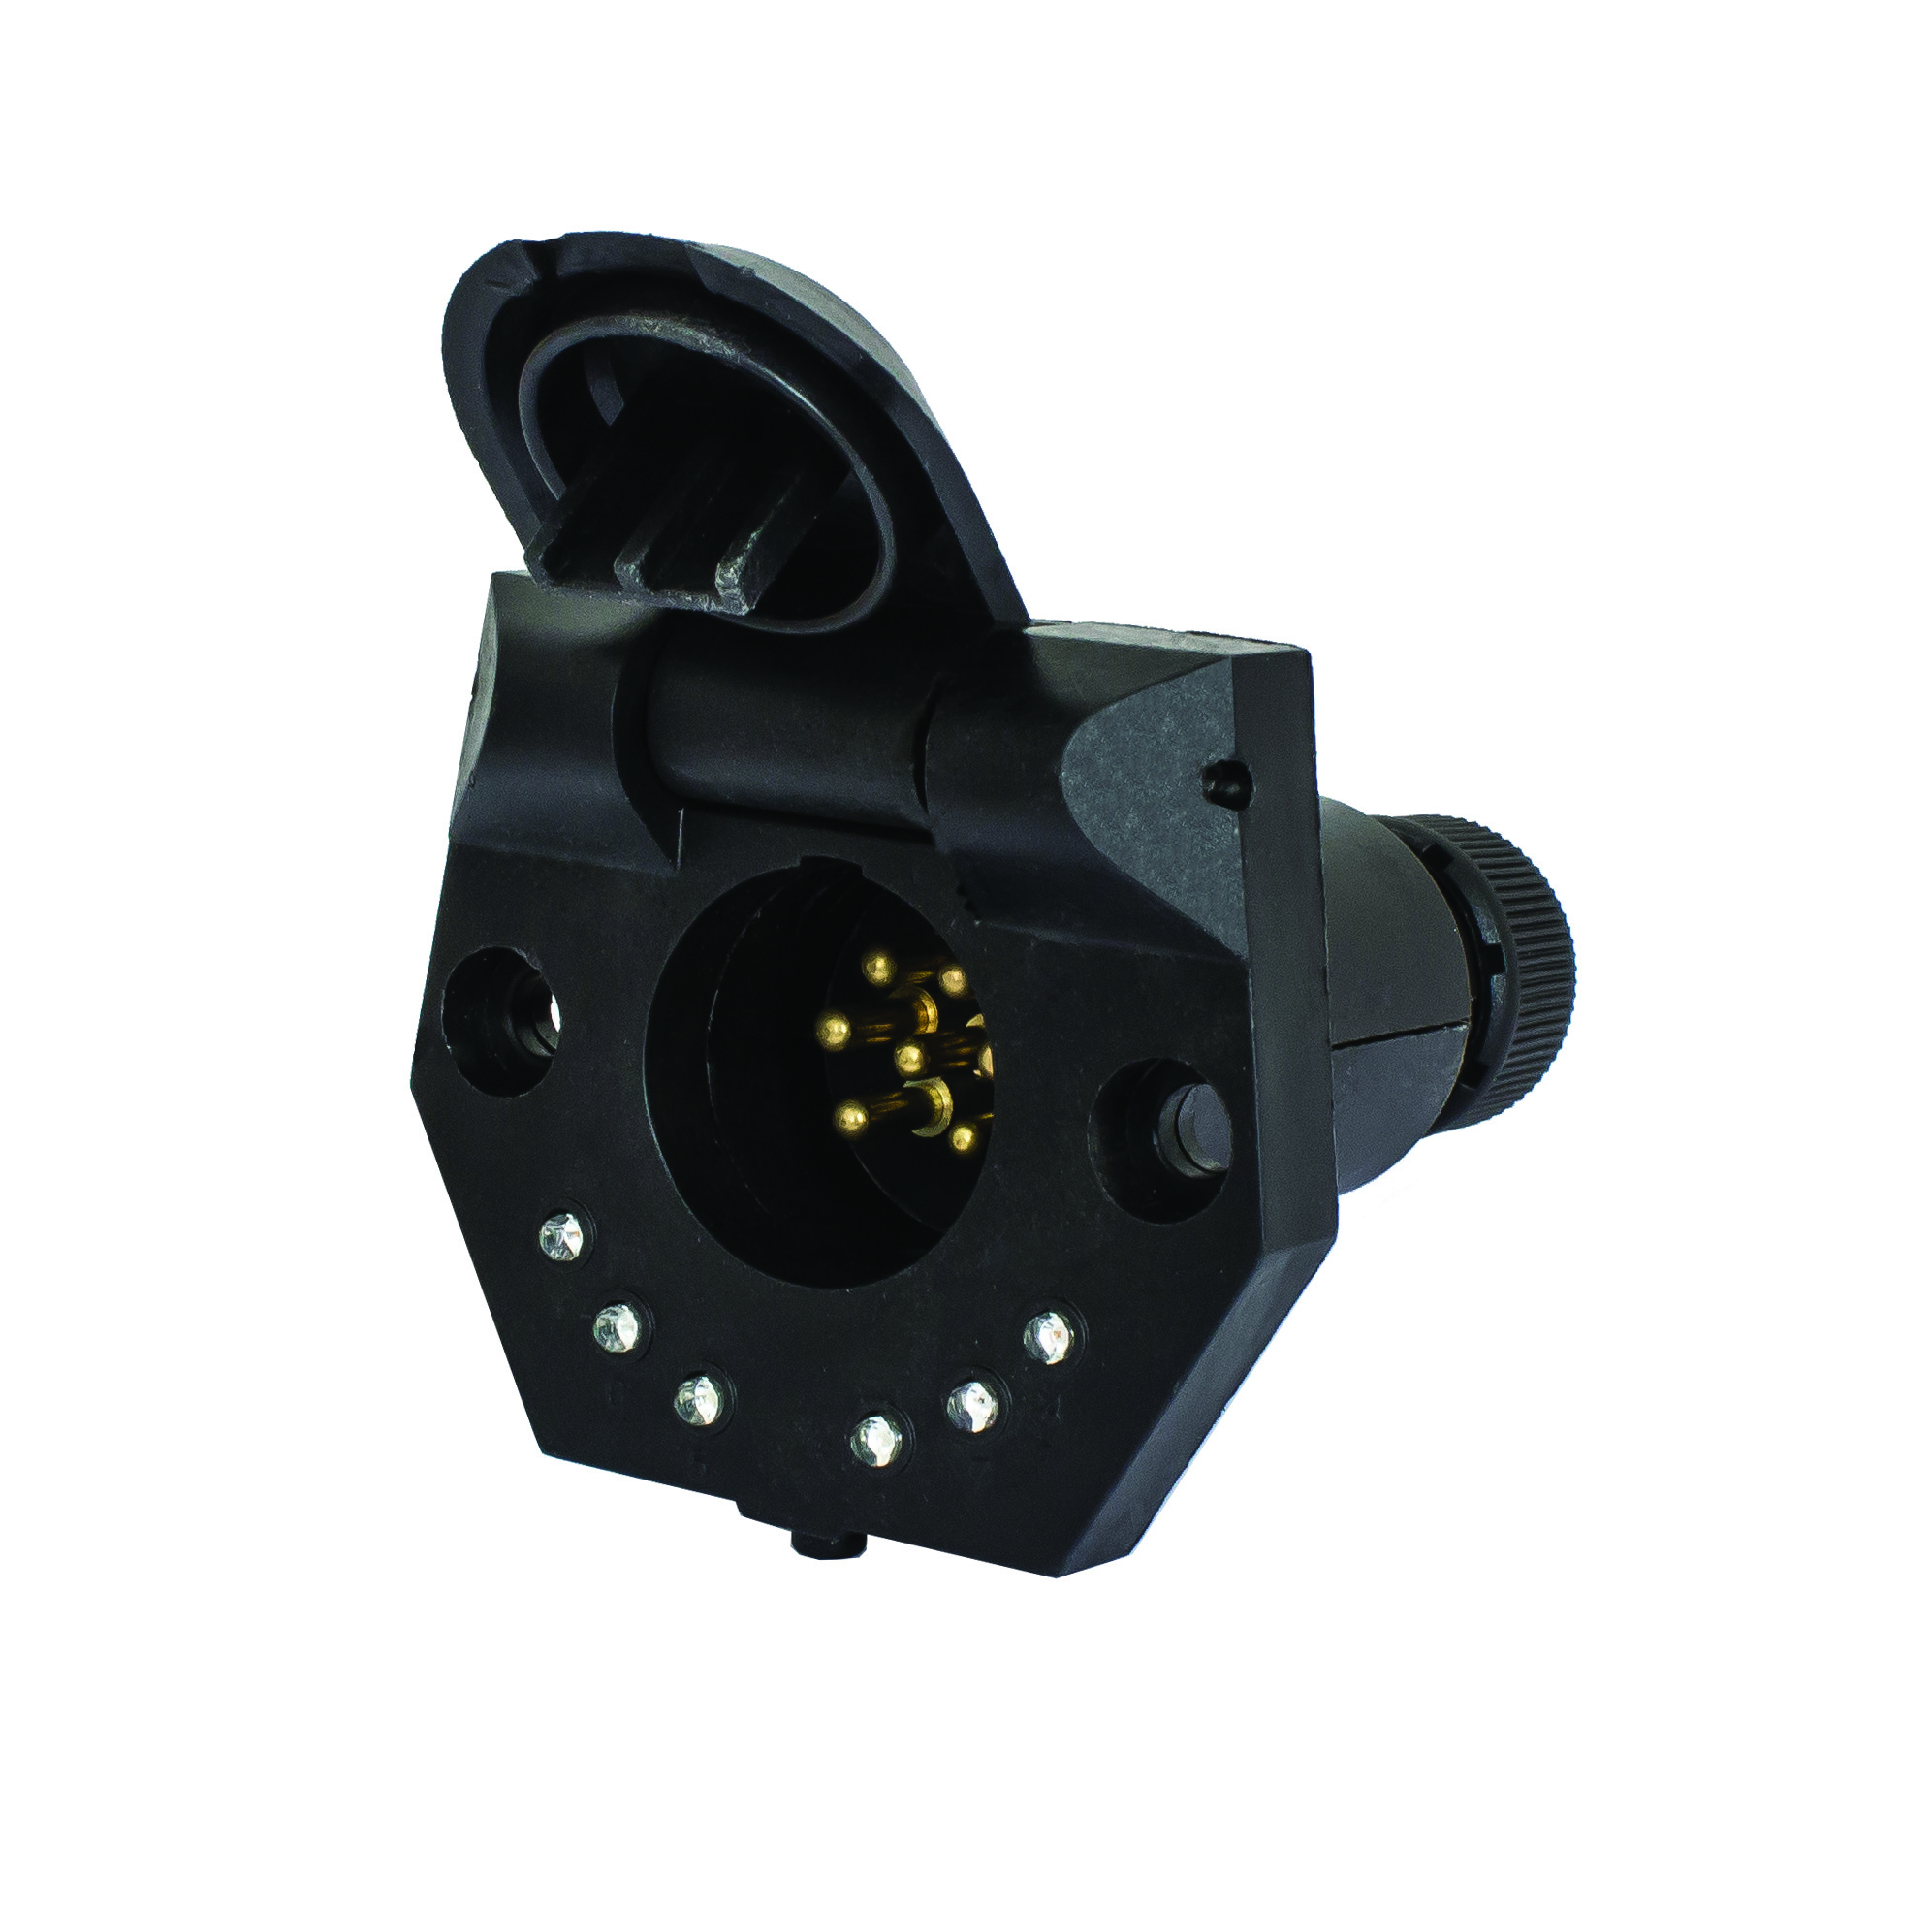 Kt Brackets For Securing Trailer Sockets To Prevent Dragging Cables Led Circuit Tester Suits Kt702 Small Round Socket With Inbuilt